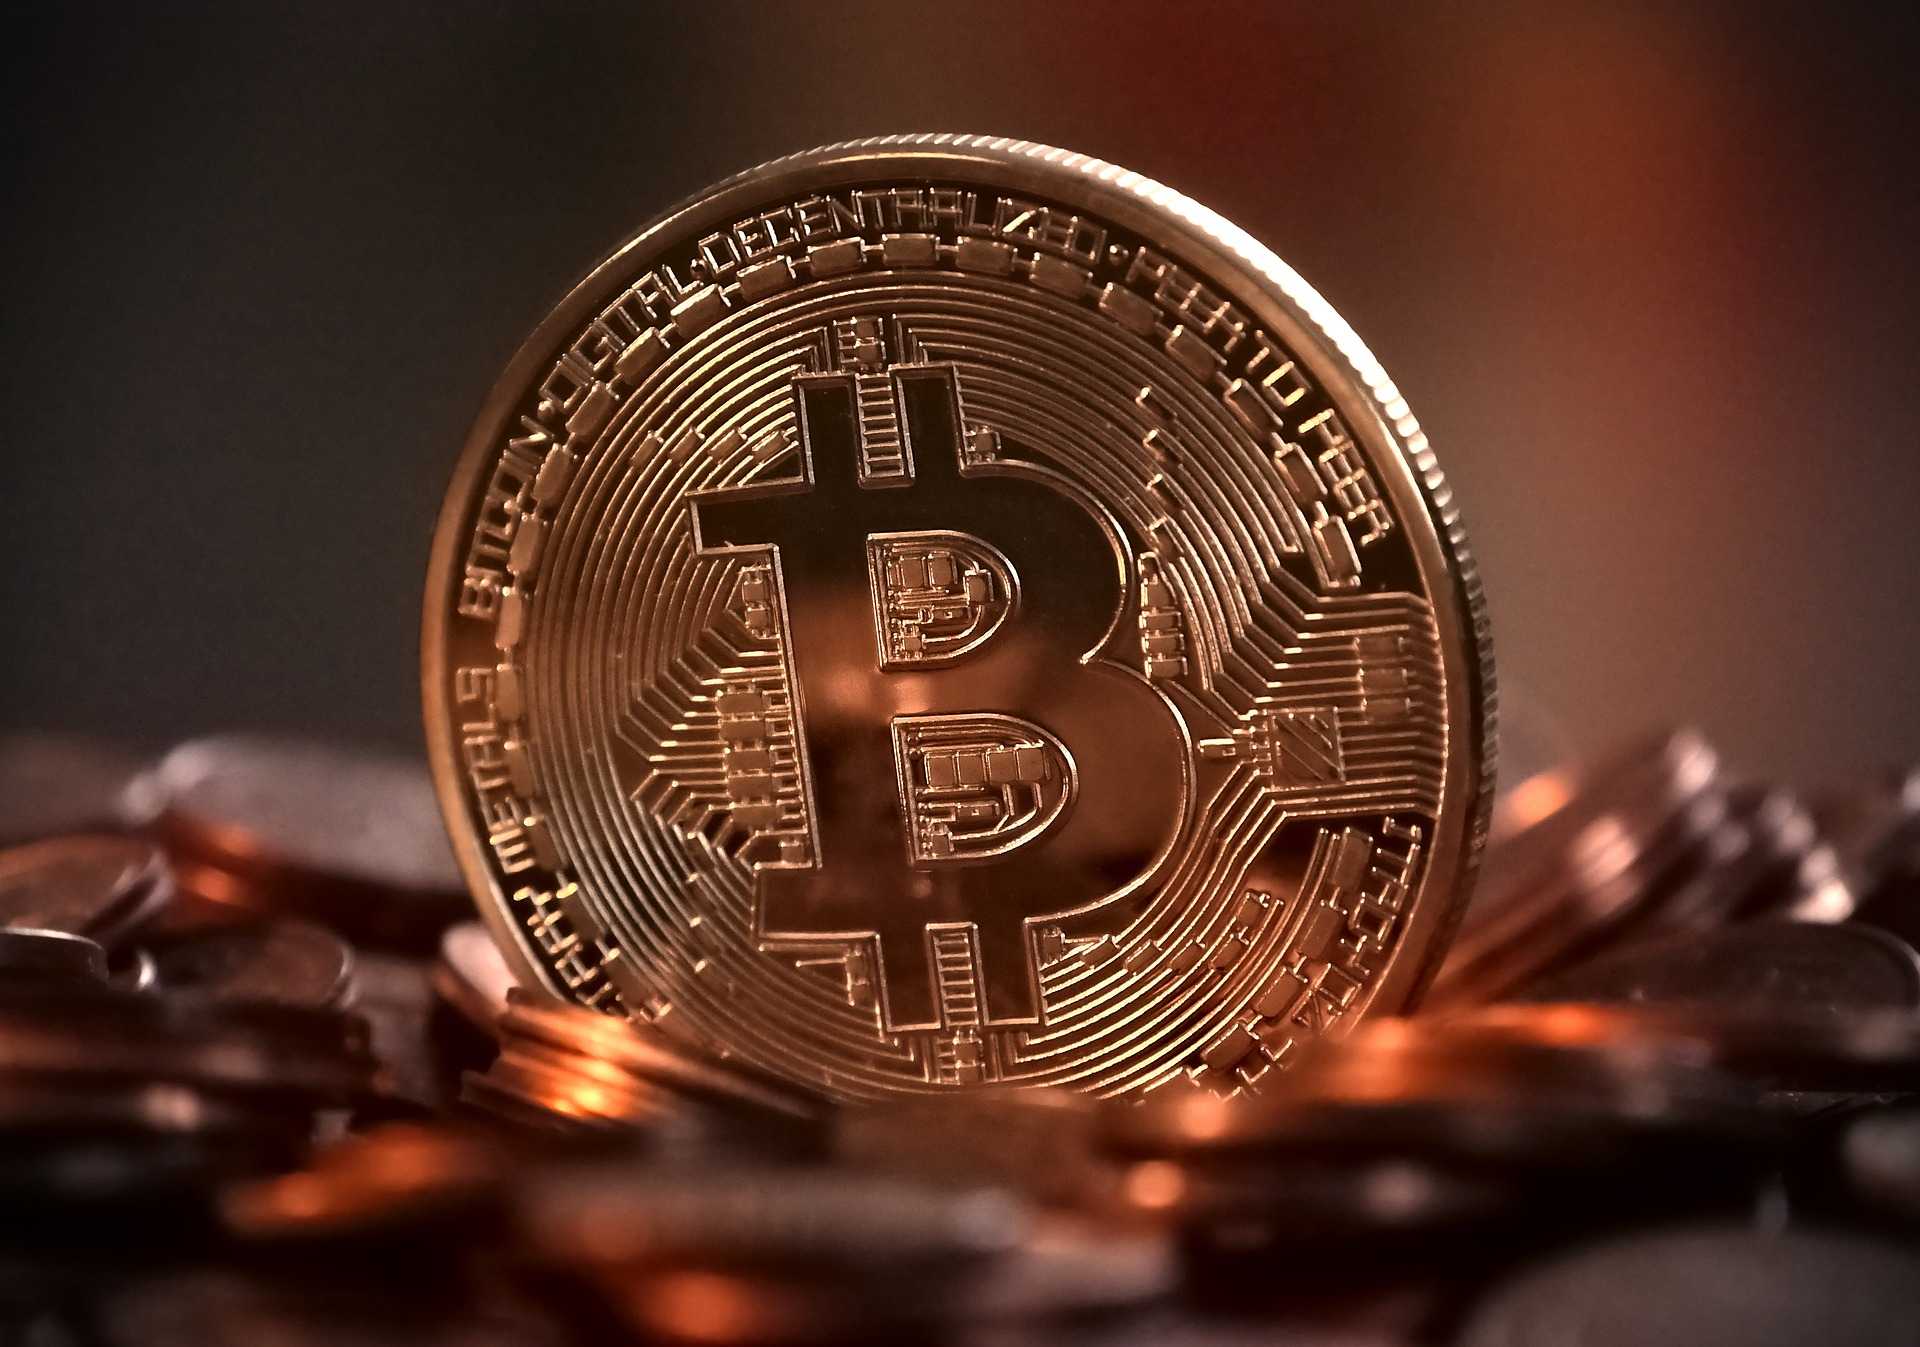 Djb crypto currency steam mobile authenticator betting trends